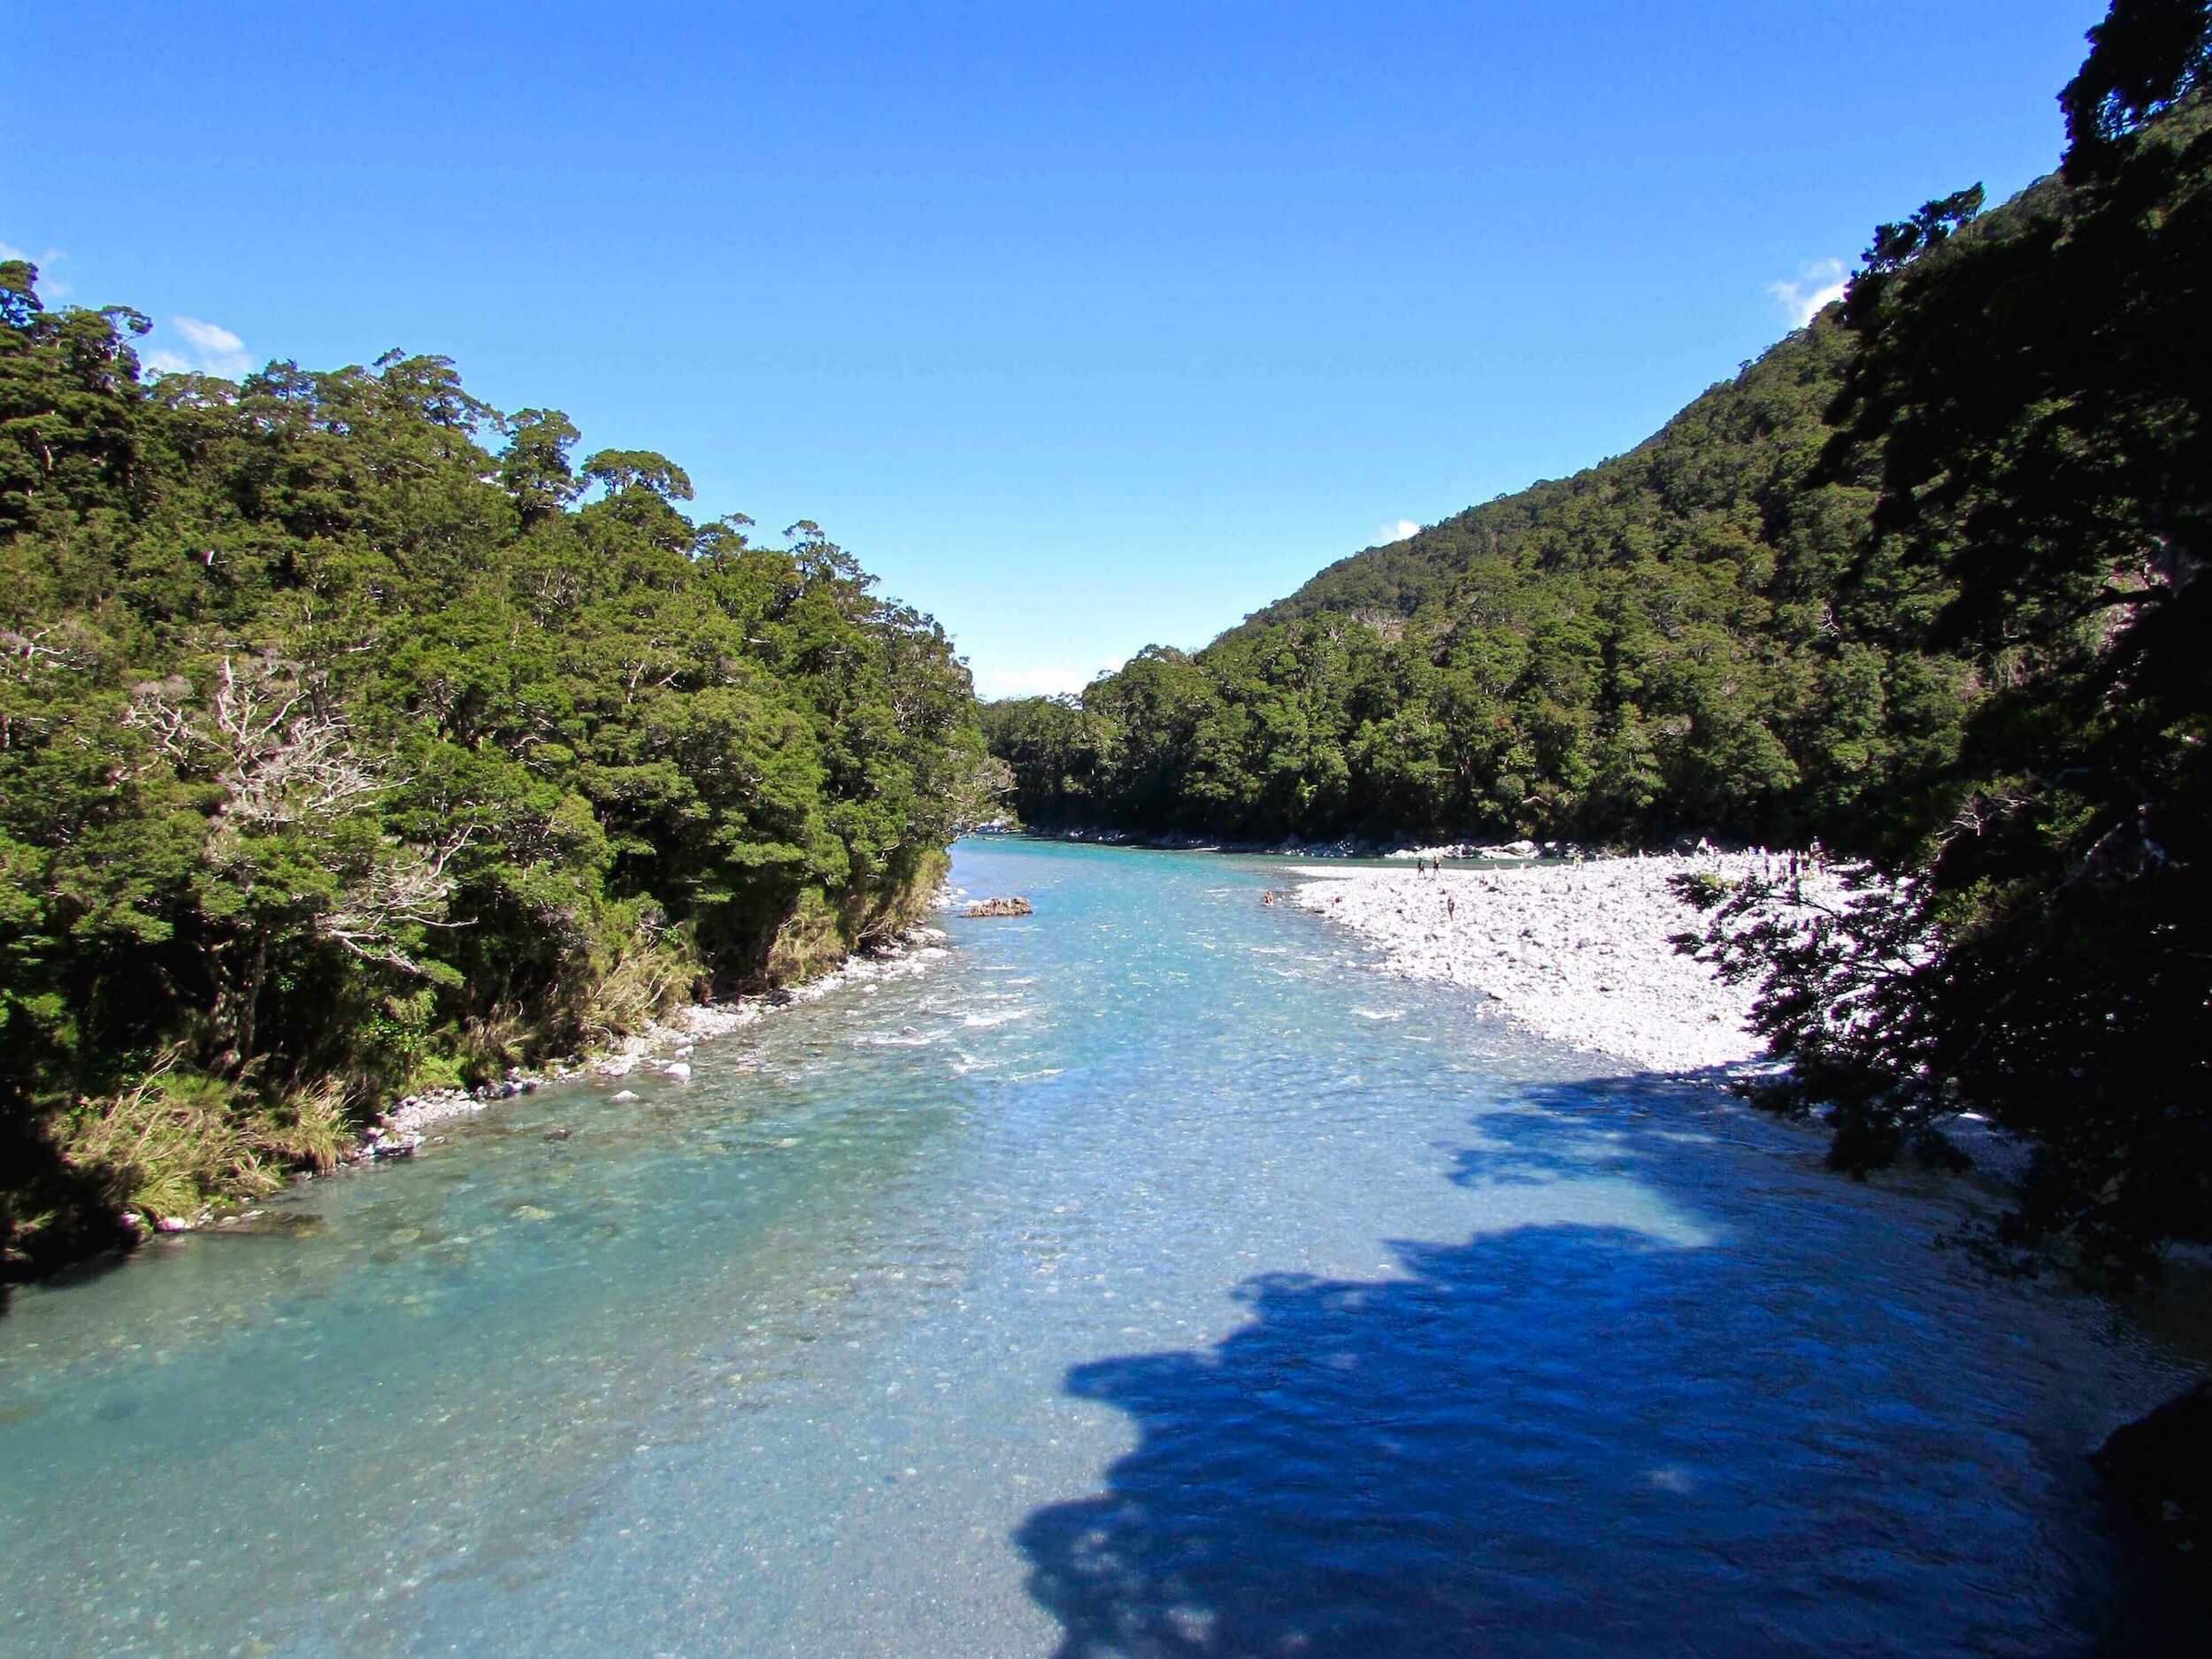 Blue Pools in New Zealand